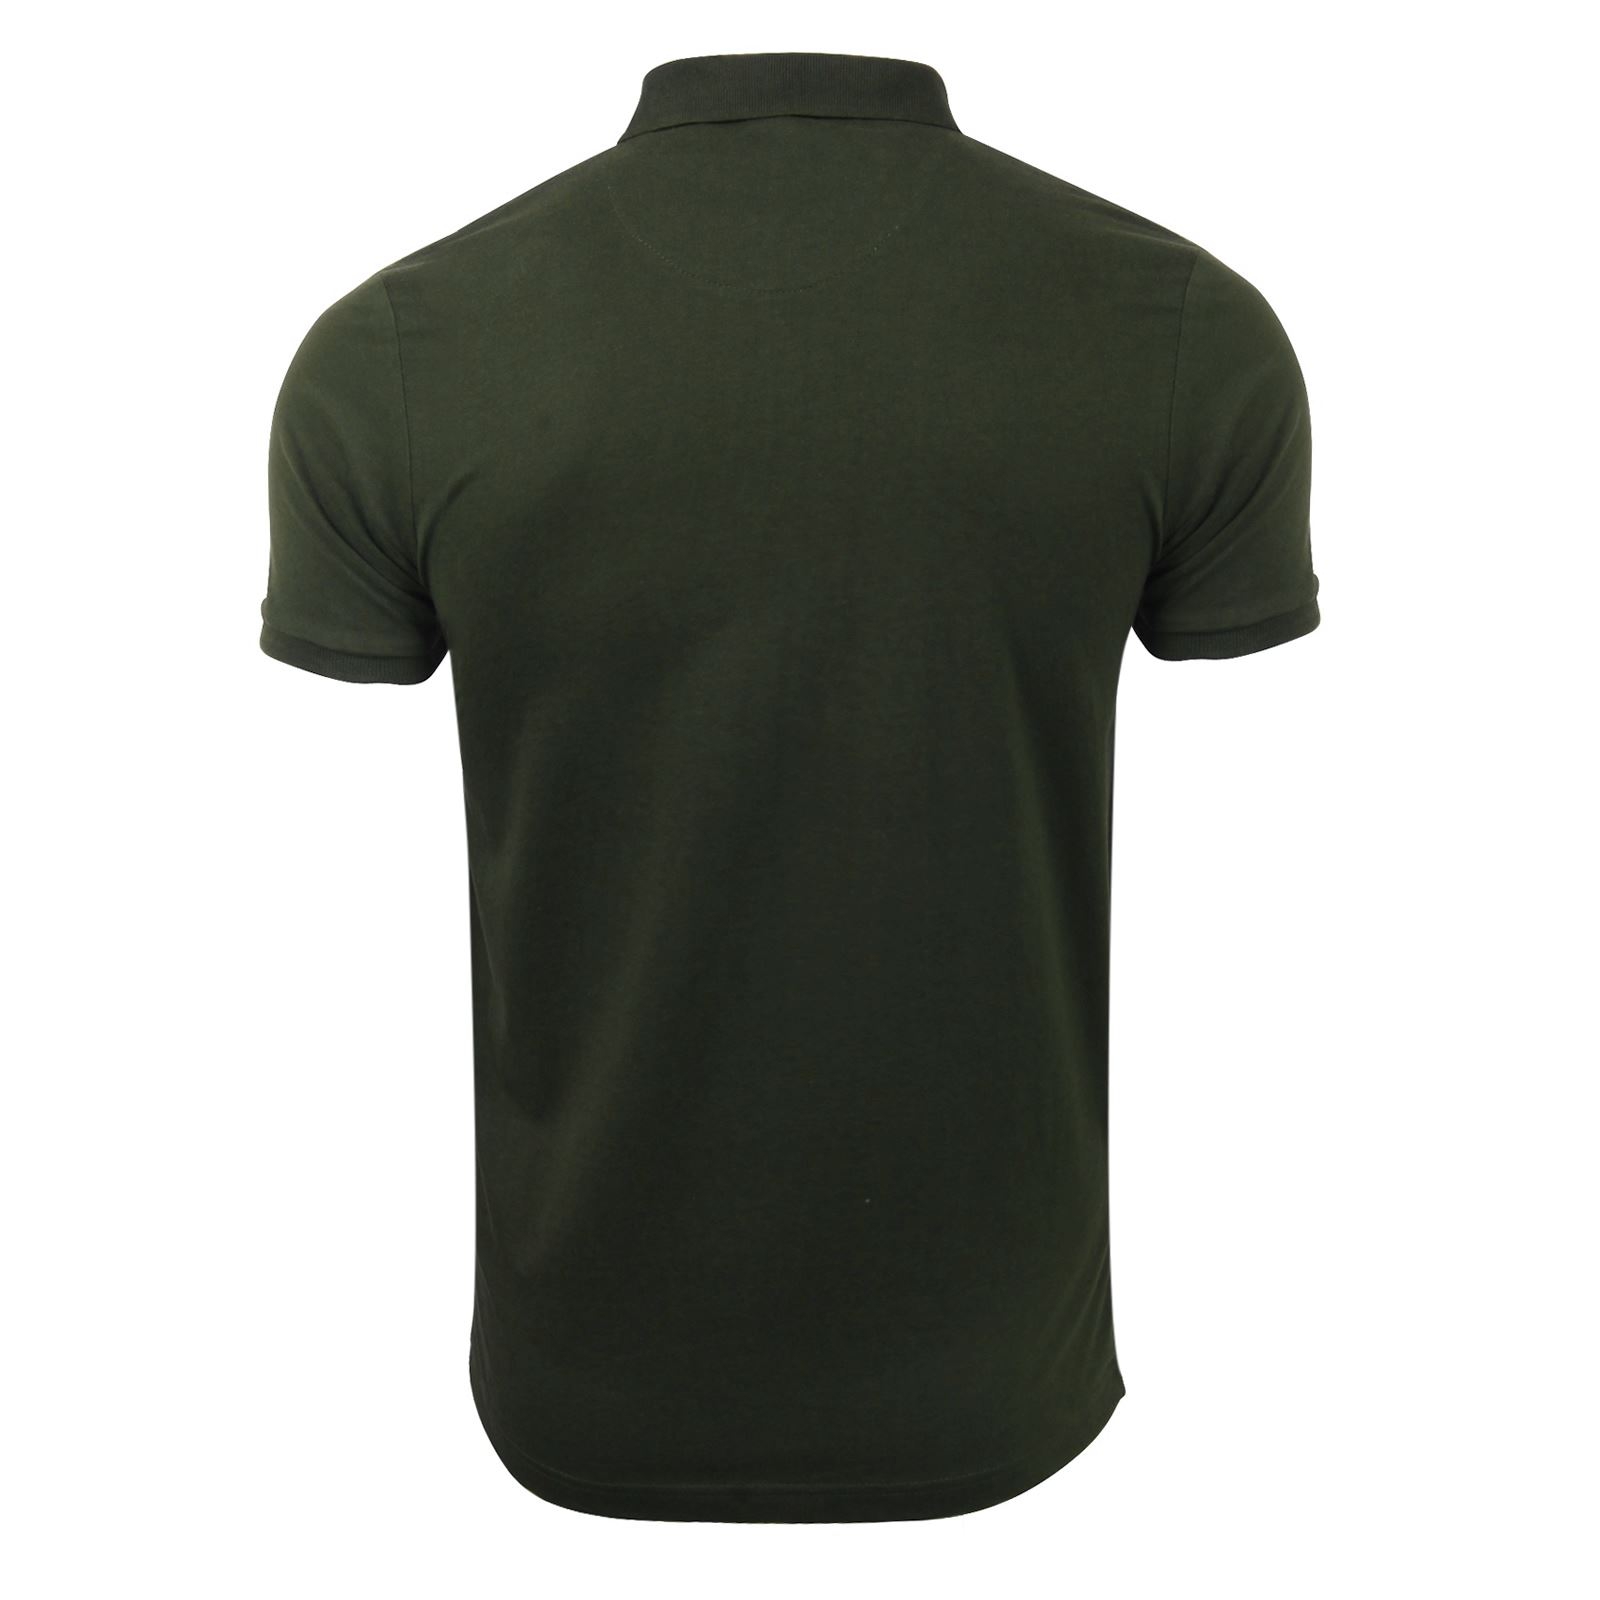 Mens-Polo-T-Shirt-Brave-Soul-Glover-Cotton-Collared-Short-Sleeve-Casual-Top thumbnail 61